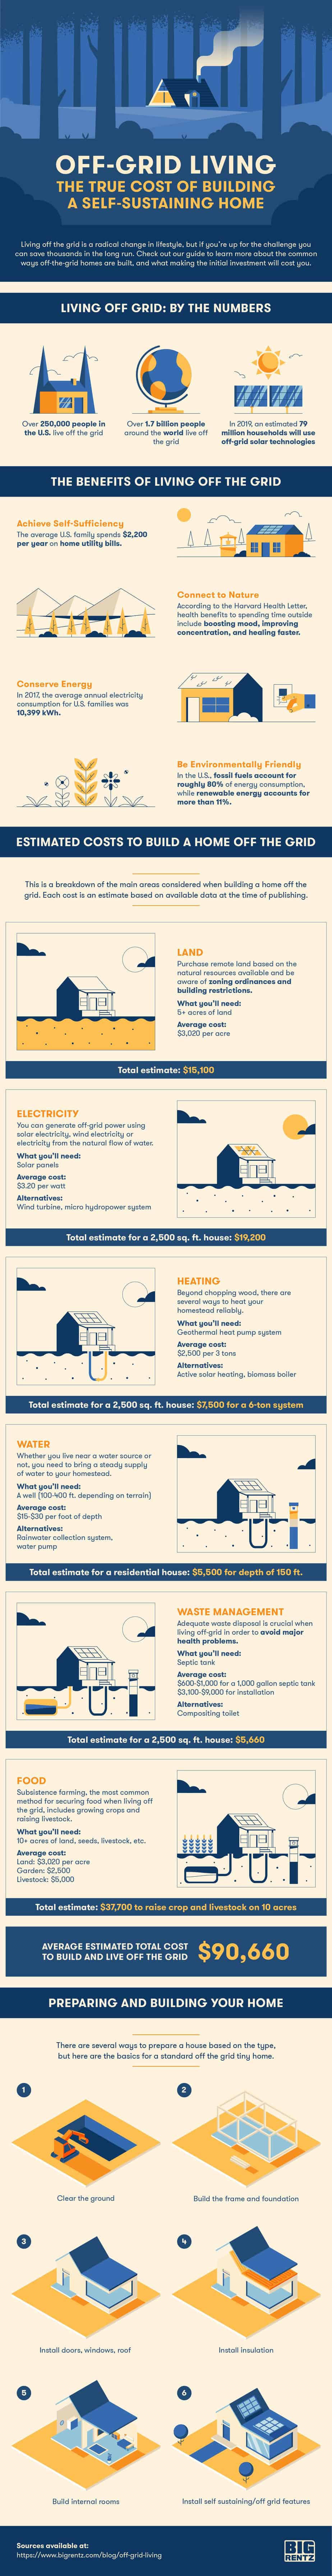 The Cost Of Living Off the Grid Infographic